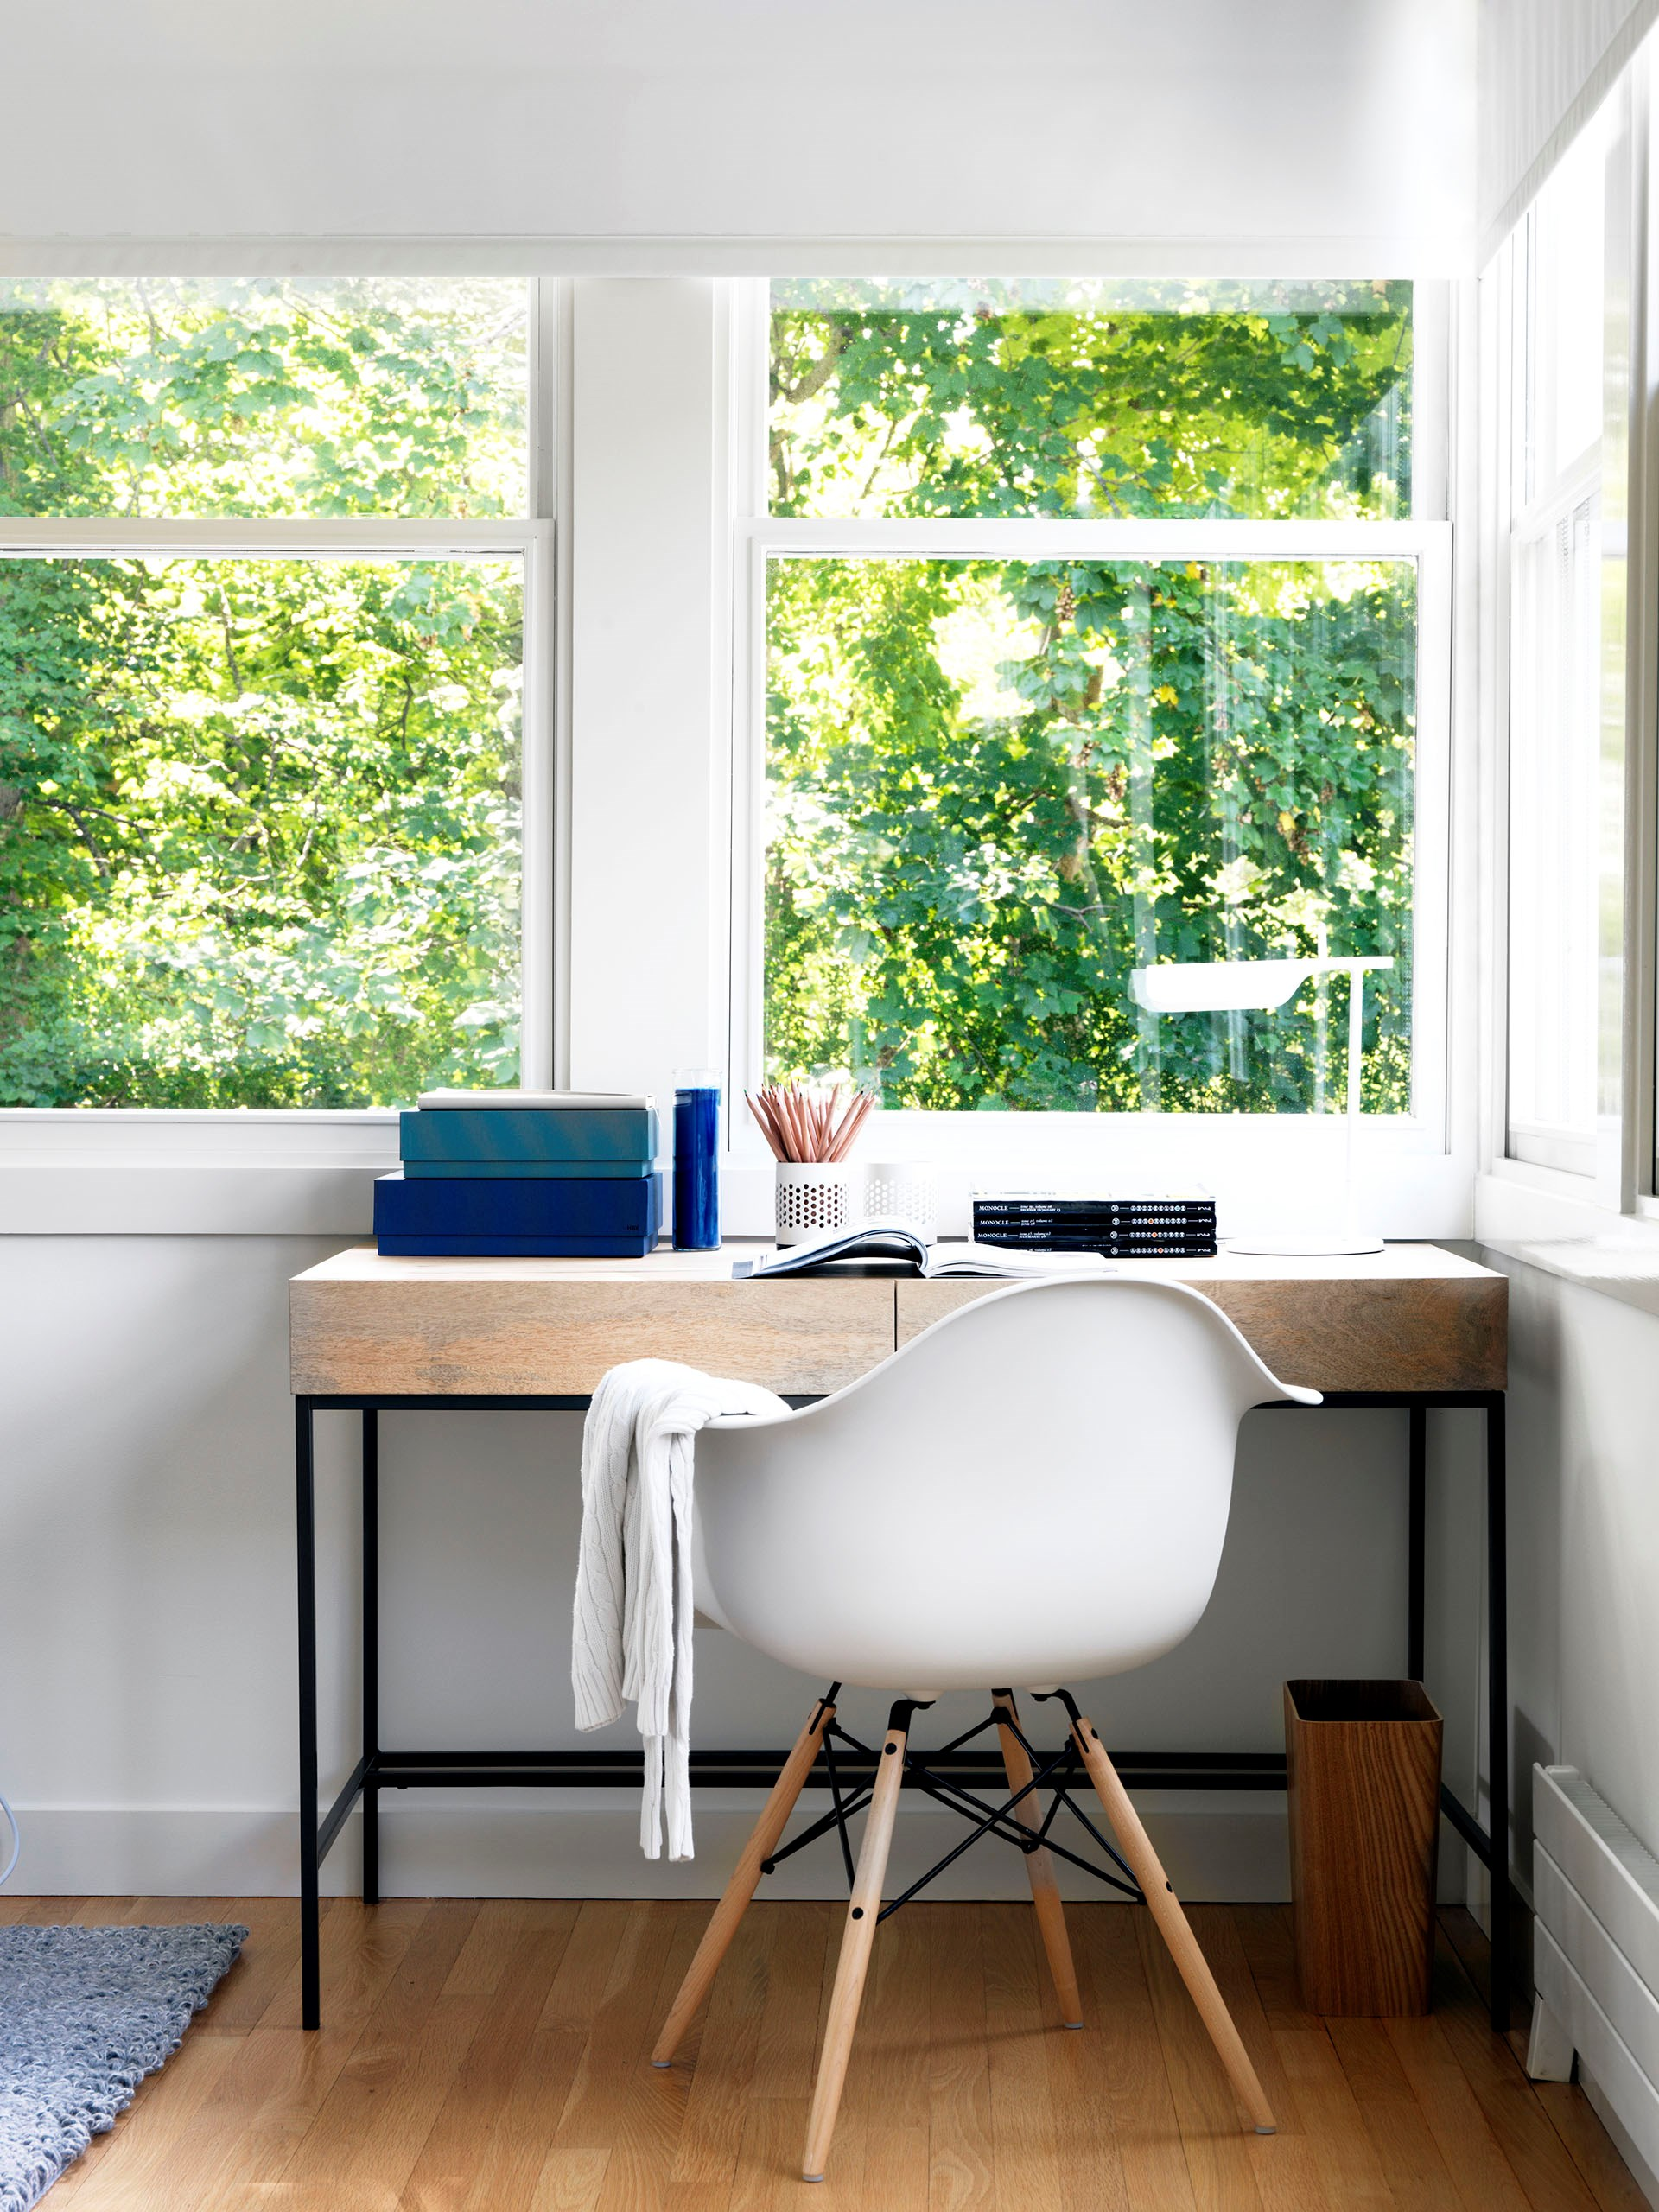 **LOCATION, LOCATION, LOCATION** <br><br>Children are much more likely to utilise their desks if they get natural light and have a pleasant outlook, so position their workstation by a window if possible.<br><br>